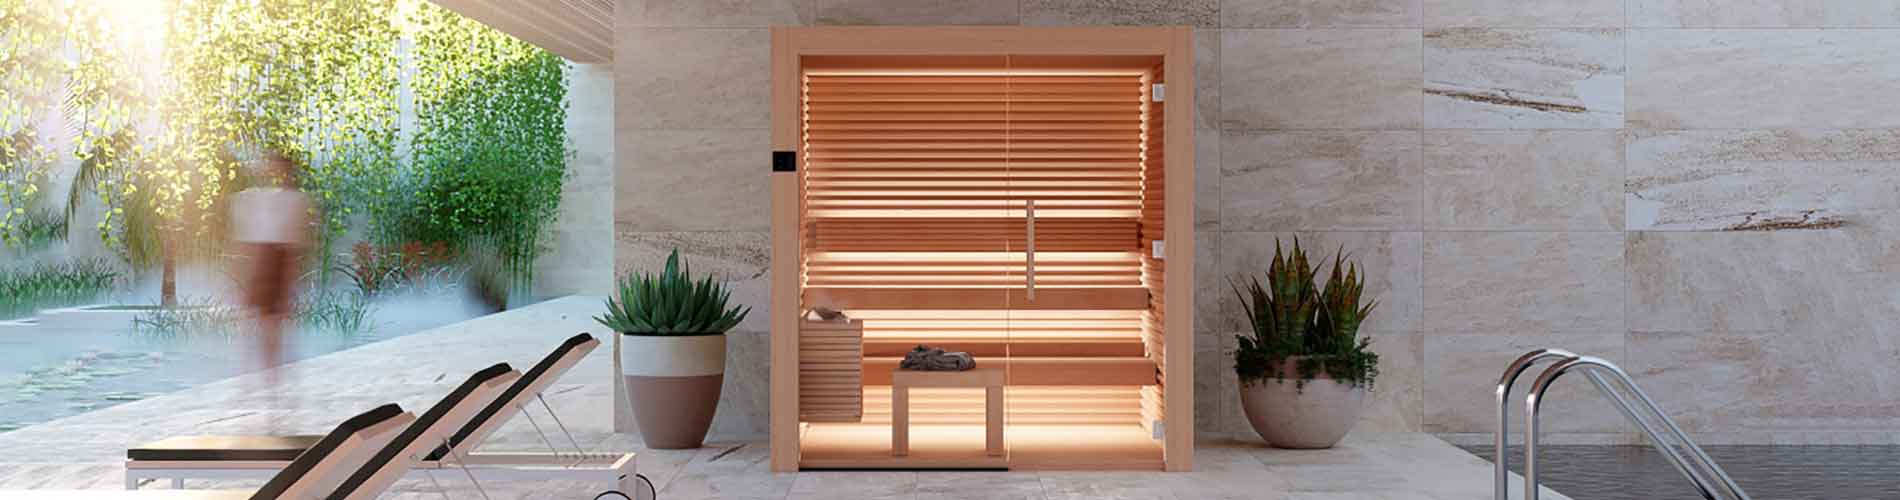 Sauna Interieur Bois Design Nativa Alpes Geneve